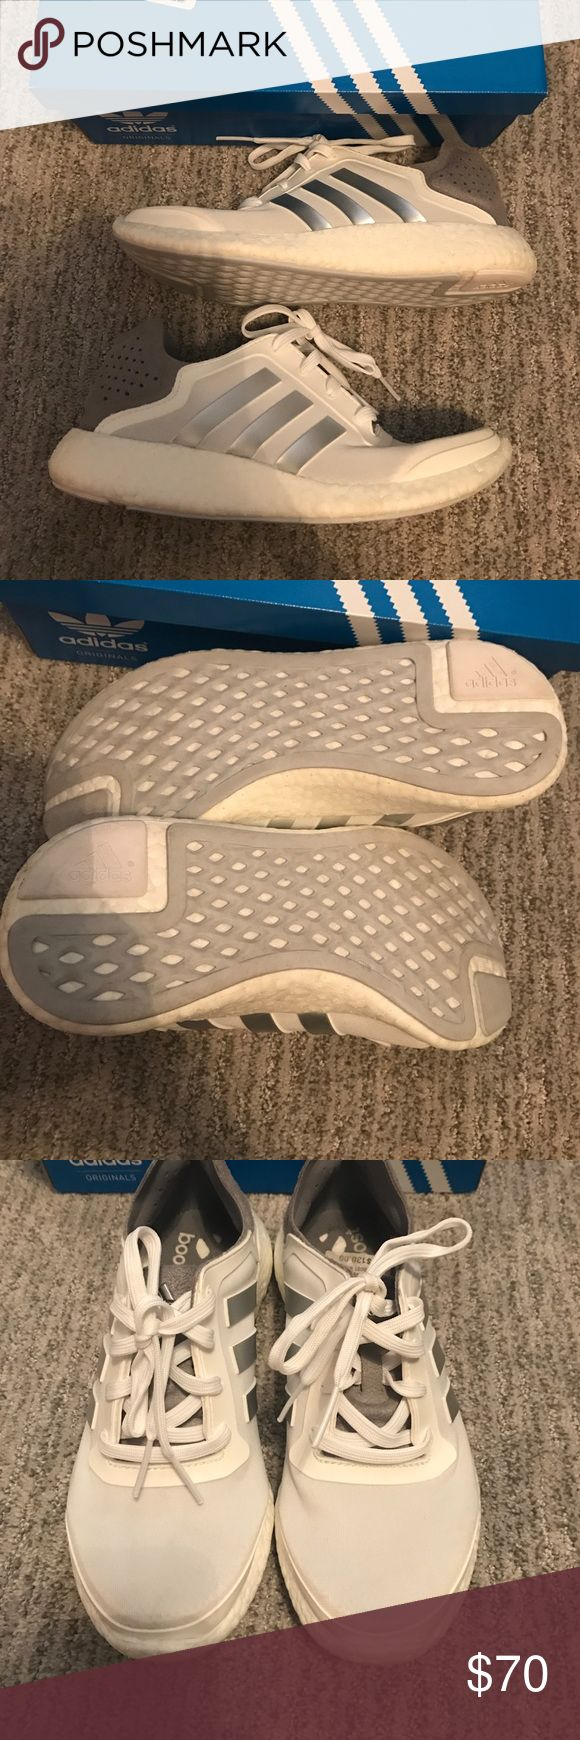 Adidas pure Boost! Like new !!! Worn once Like new ! Adidas pure Boost !! Adidas Shoes